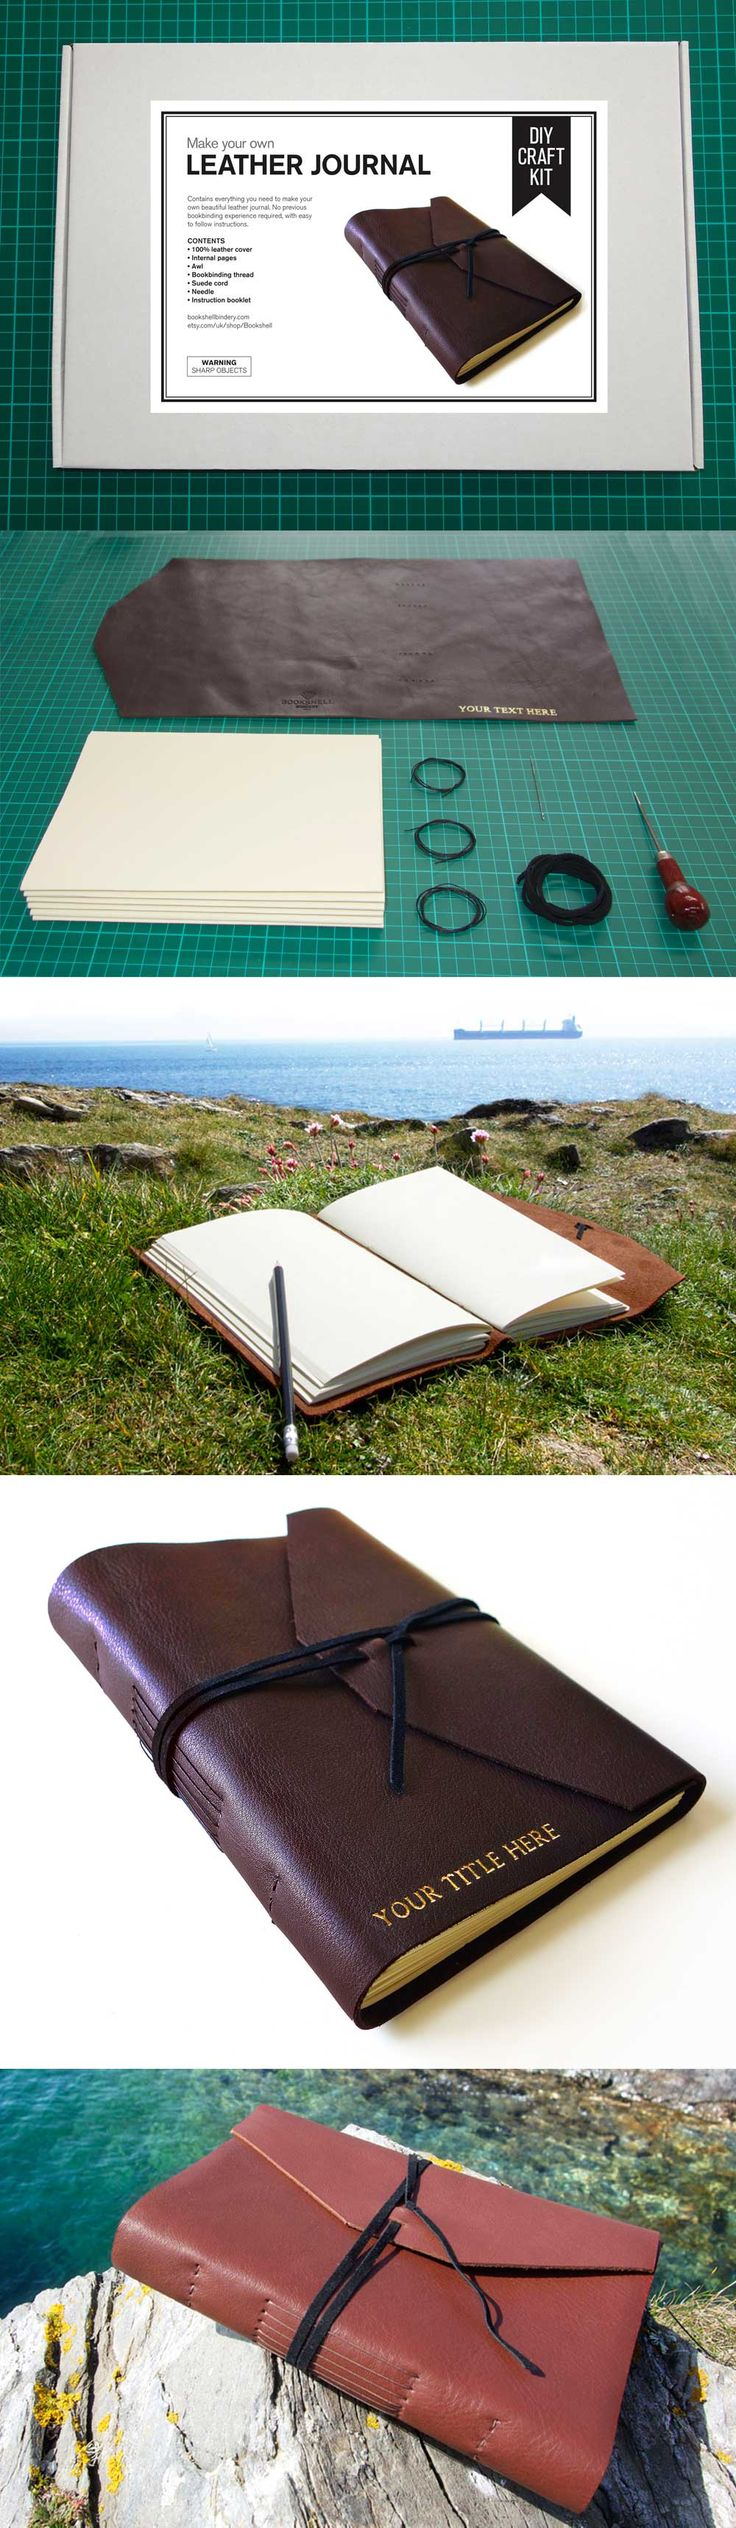 For all you budding crafters, take a look at our DIY leather journal kit, which comes with blank or lined pages, and can be personalised with your own title.  Makes a great mens gift for your dad, boyfriend, husband, or brother. Available in black, dark brown or light brown cowhide leather.